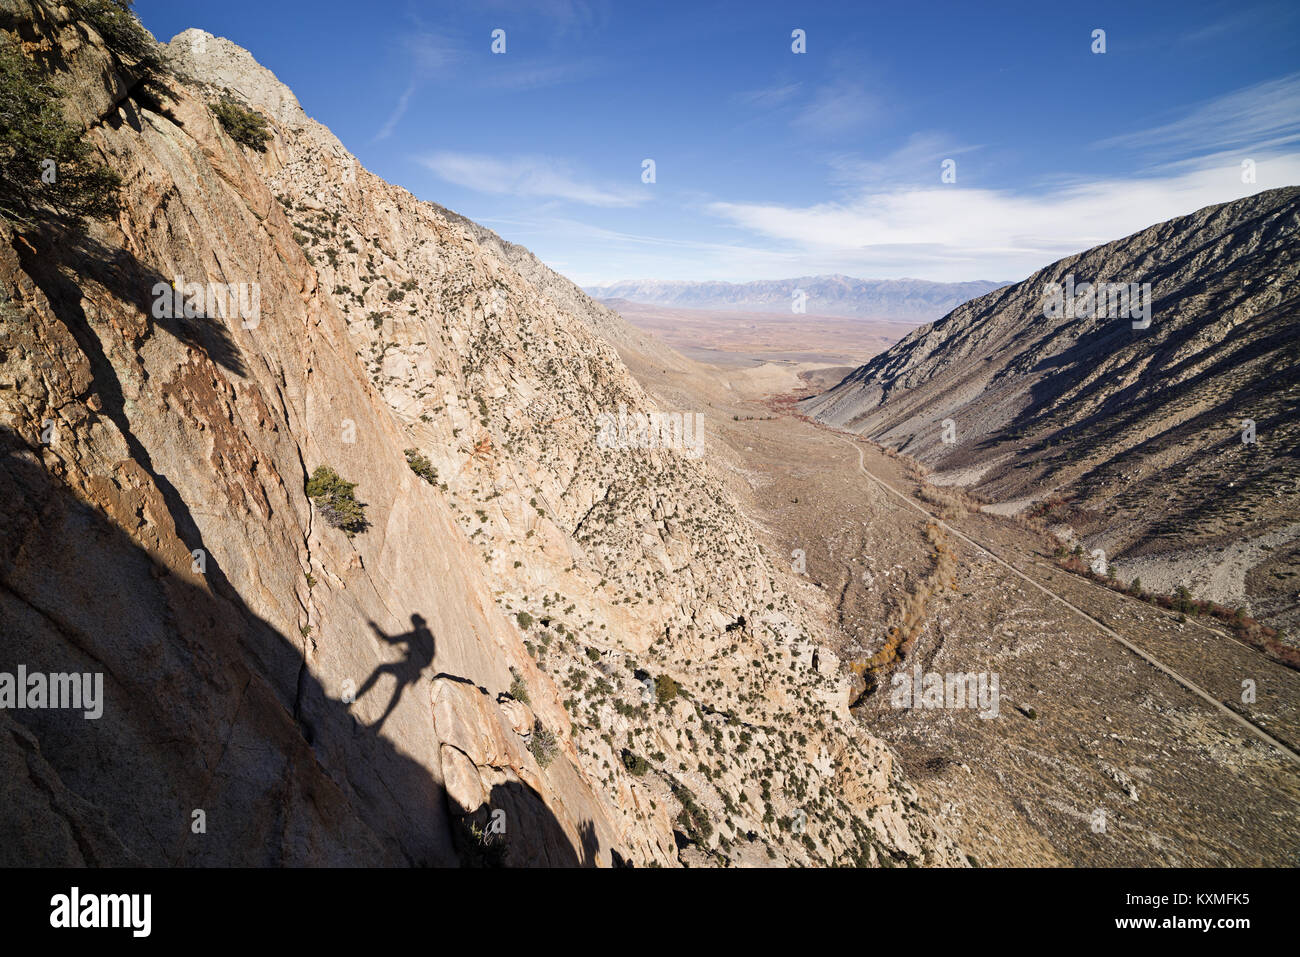 shadow of a rapeller high on a cliff in Pine Creek California - Stock Image